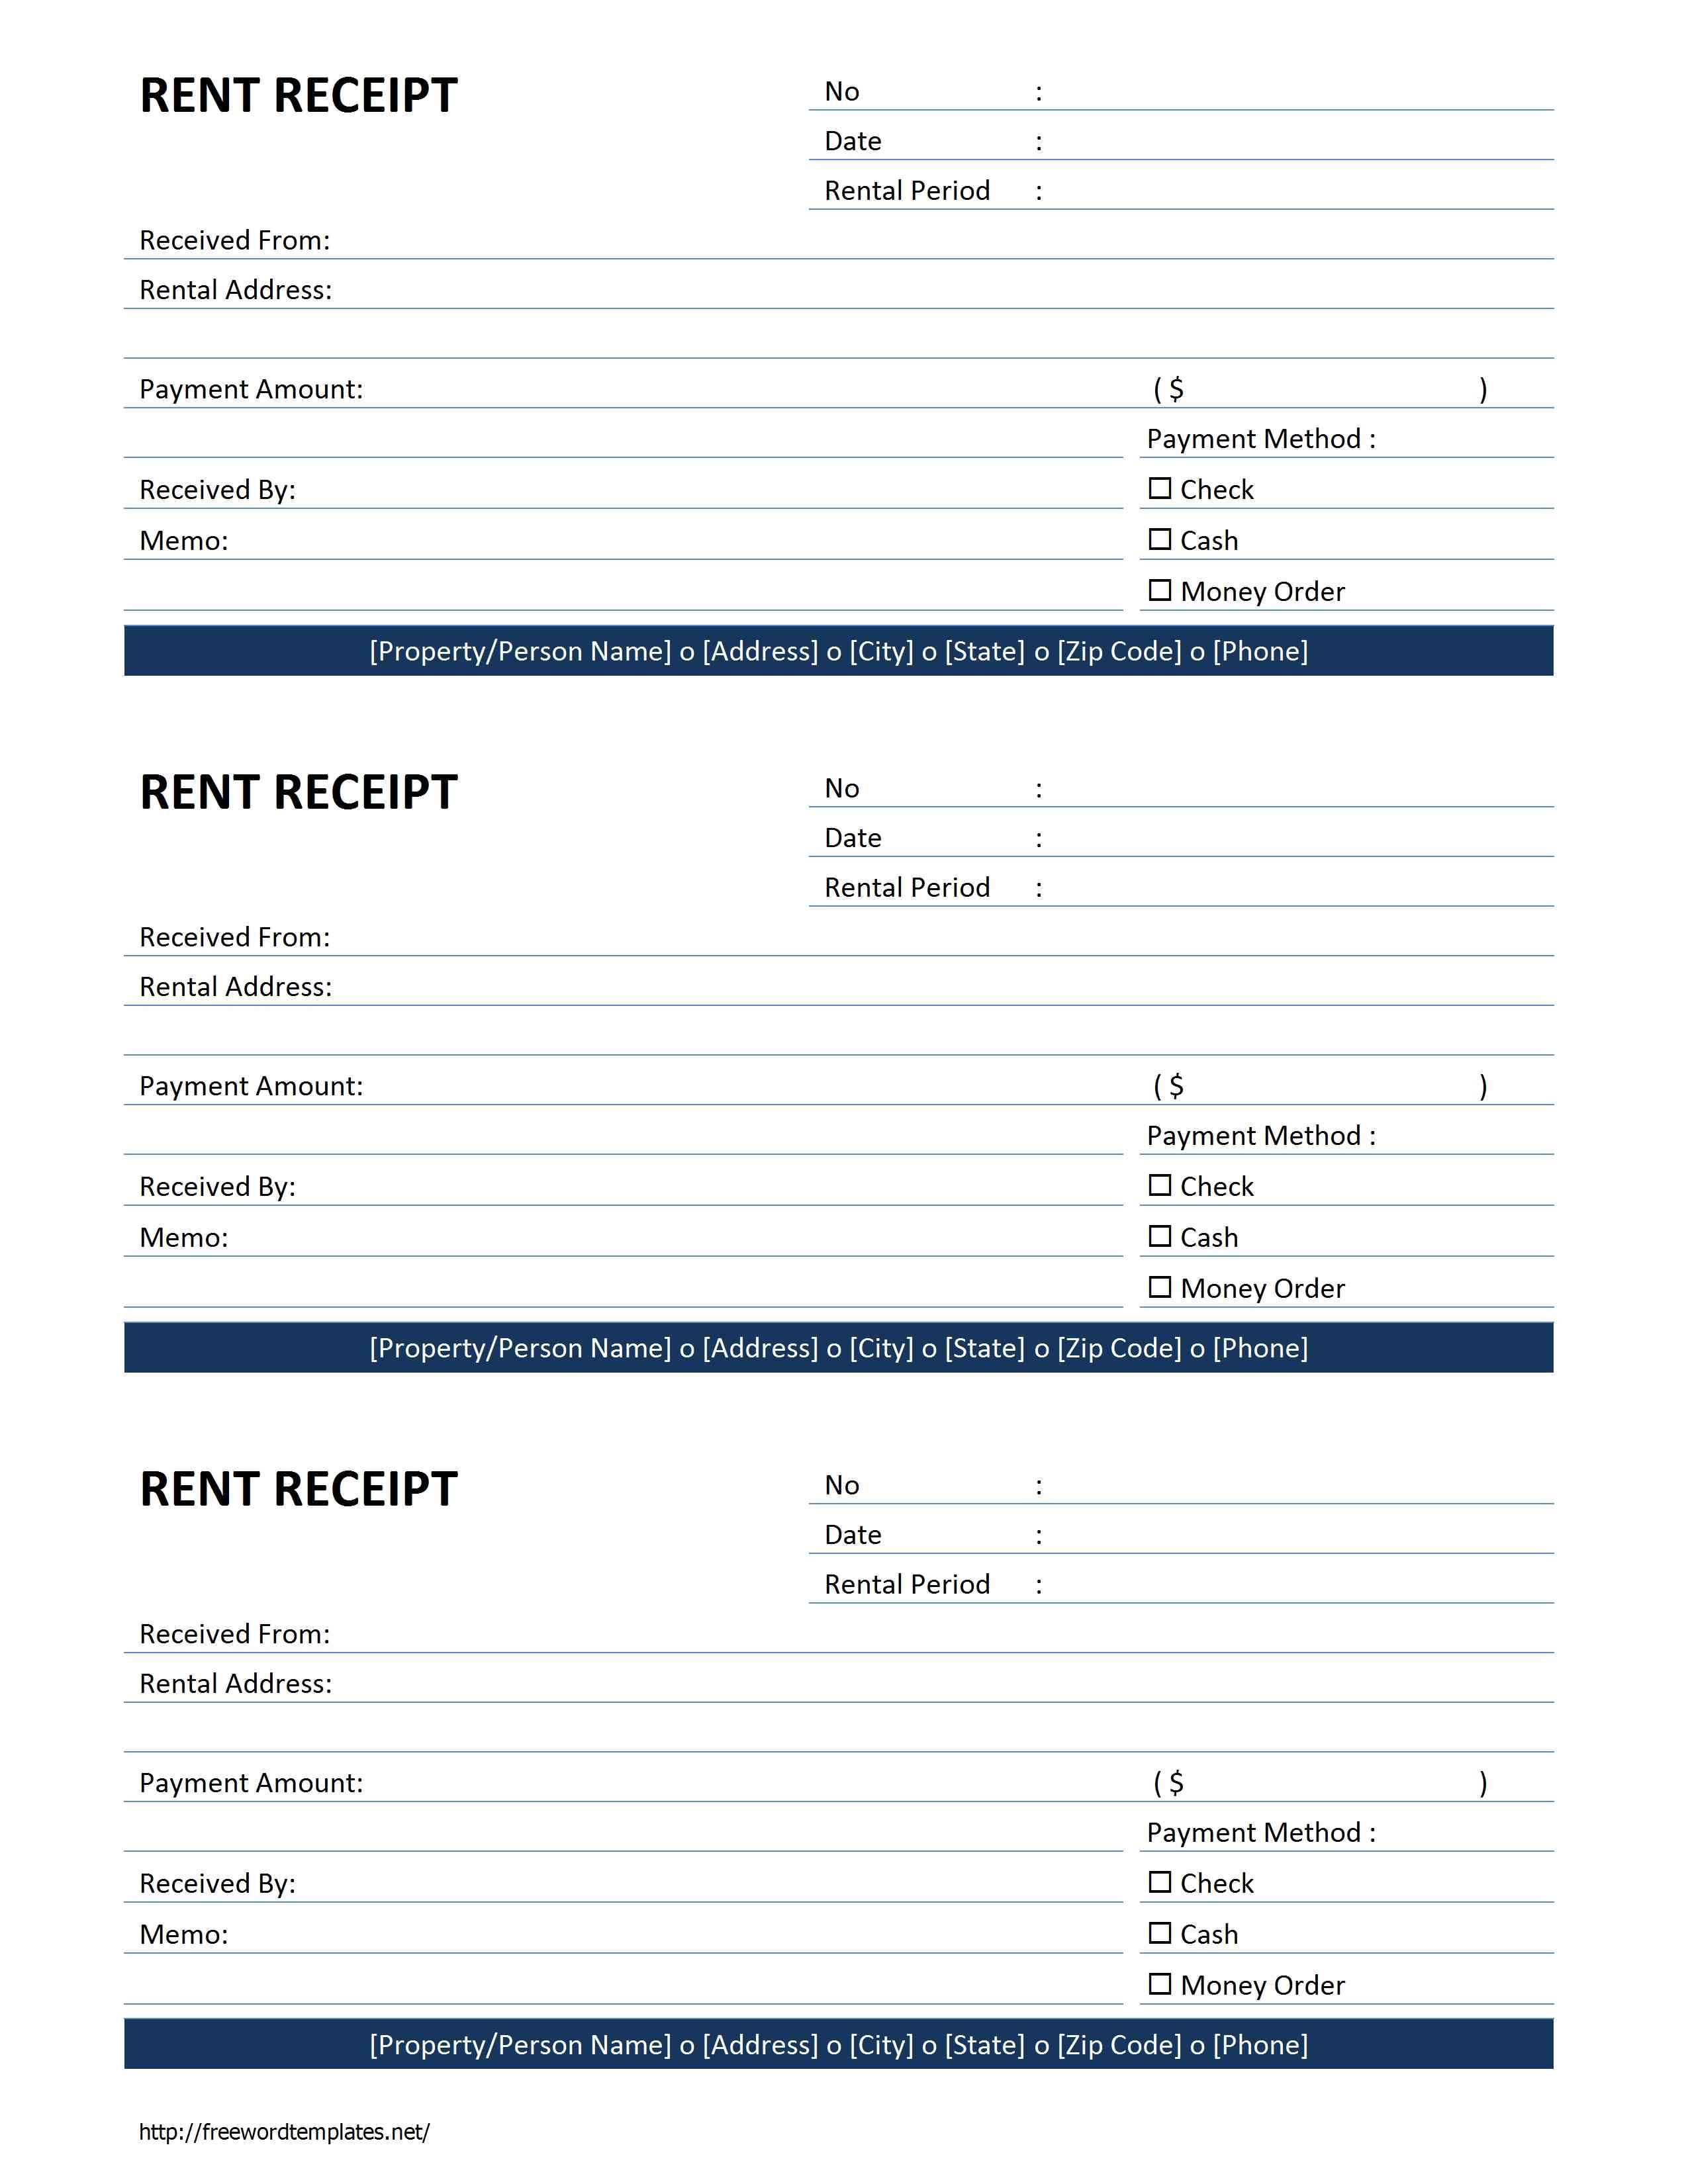 rent invoice form rent receipt template free microsoft word templates 2550 X 3300